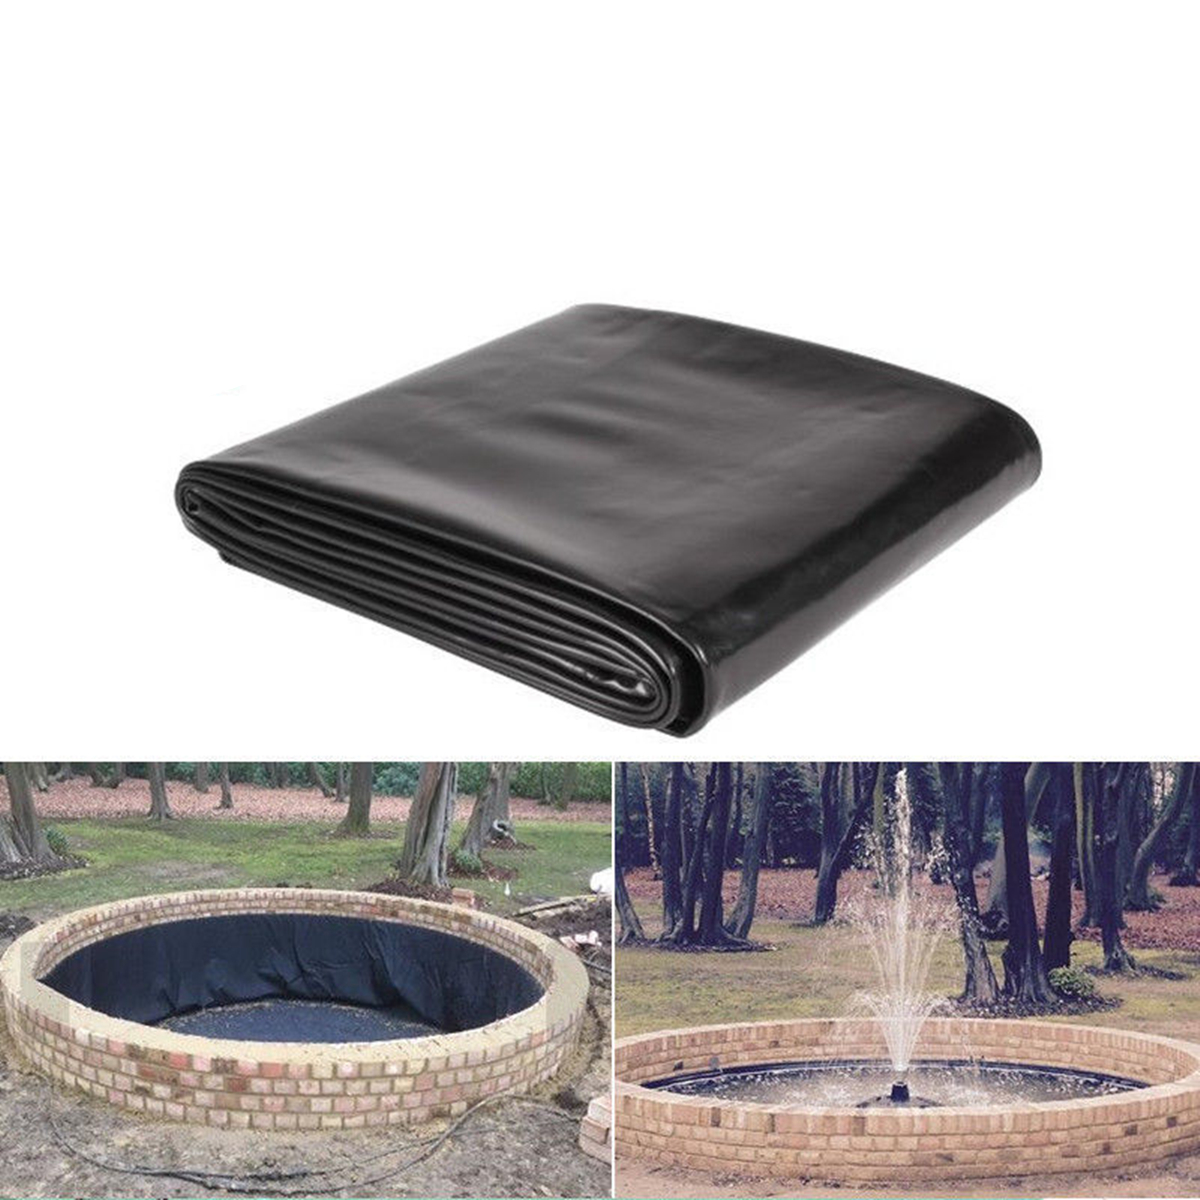 New 3x3ft 30S Waterproof Liner Film Fish Pond Liner Garden Pools Reinforced HDPE Heavy   Guaranty Landscaping Pool Pond